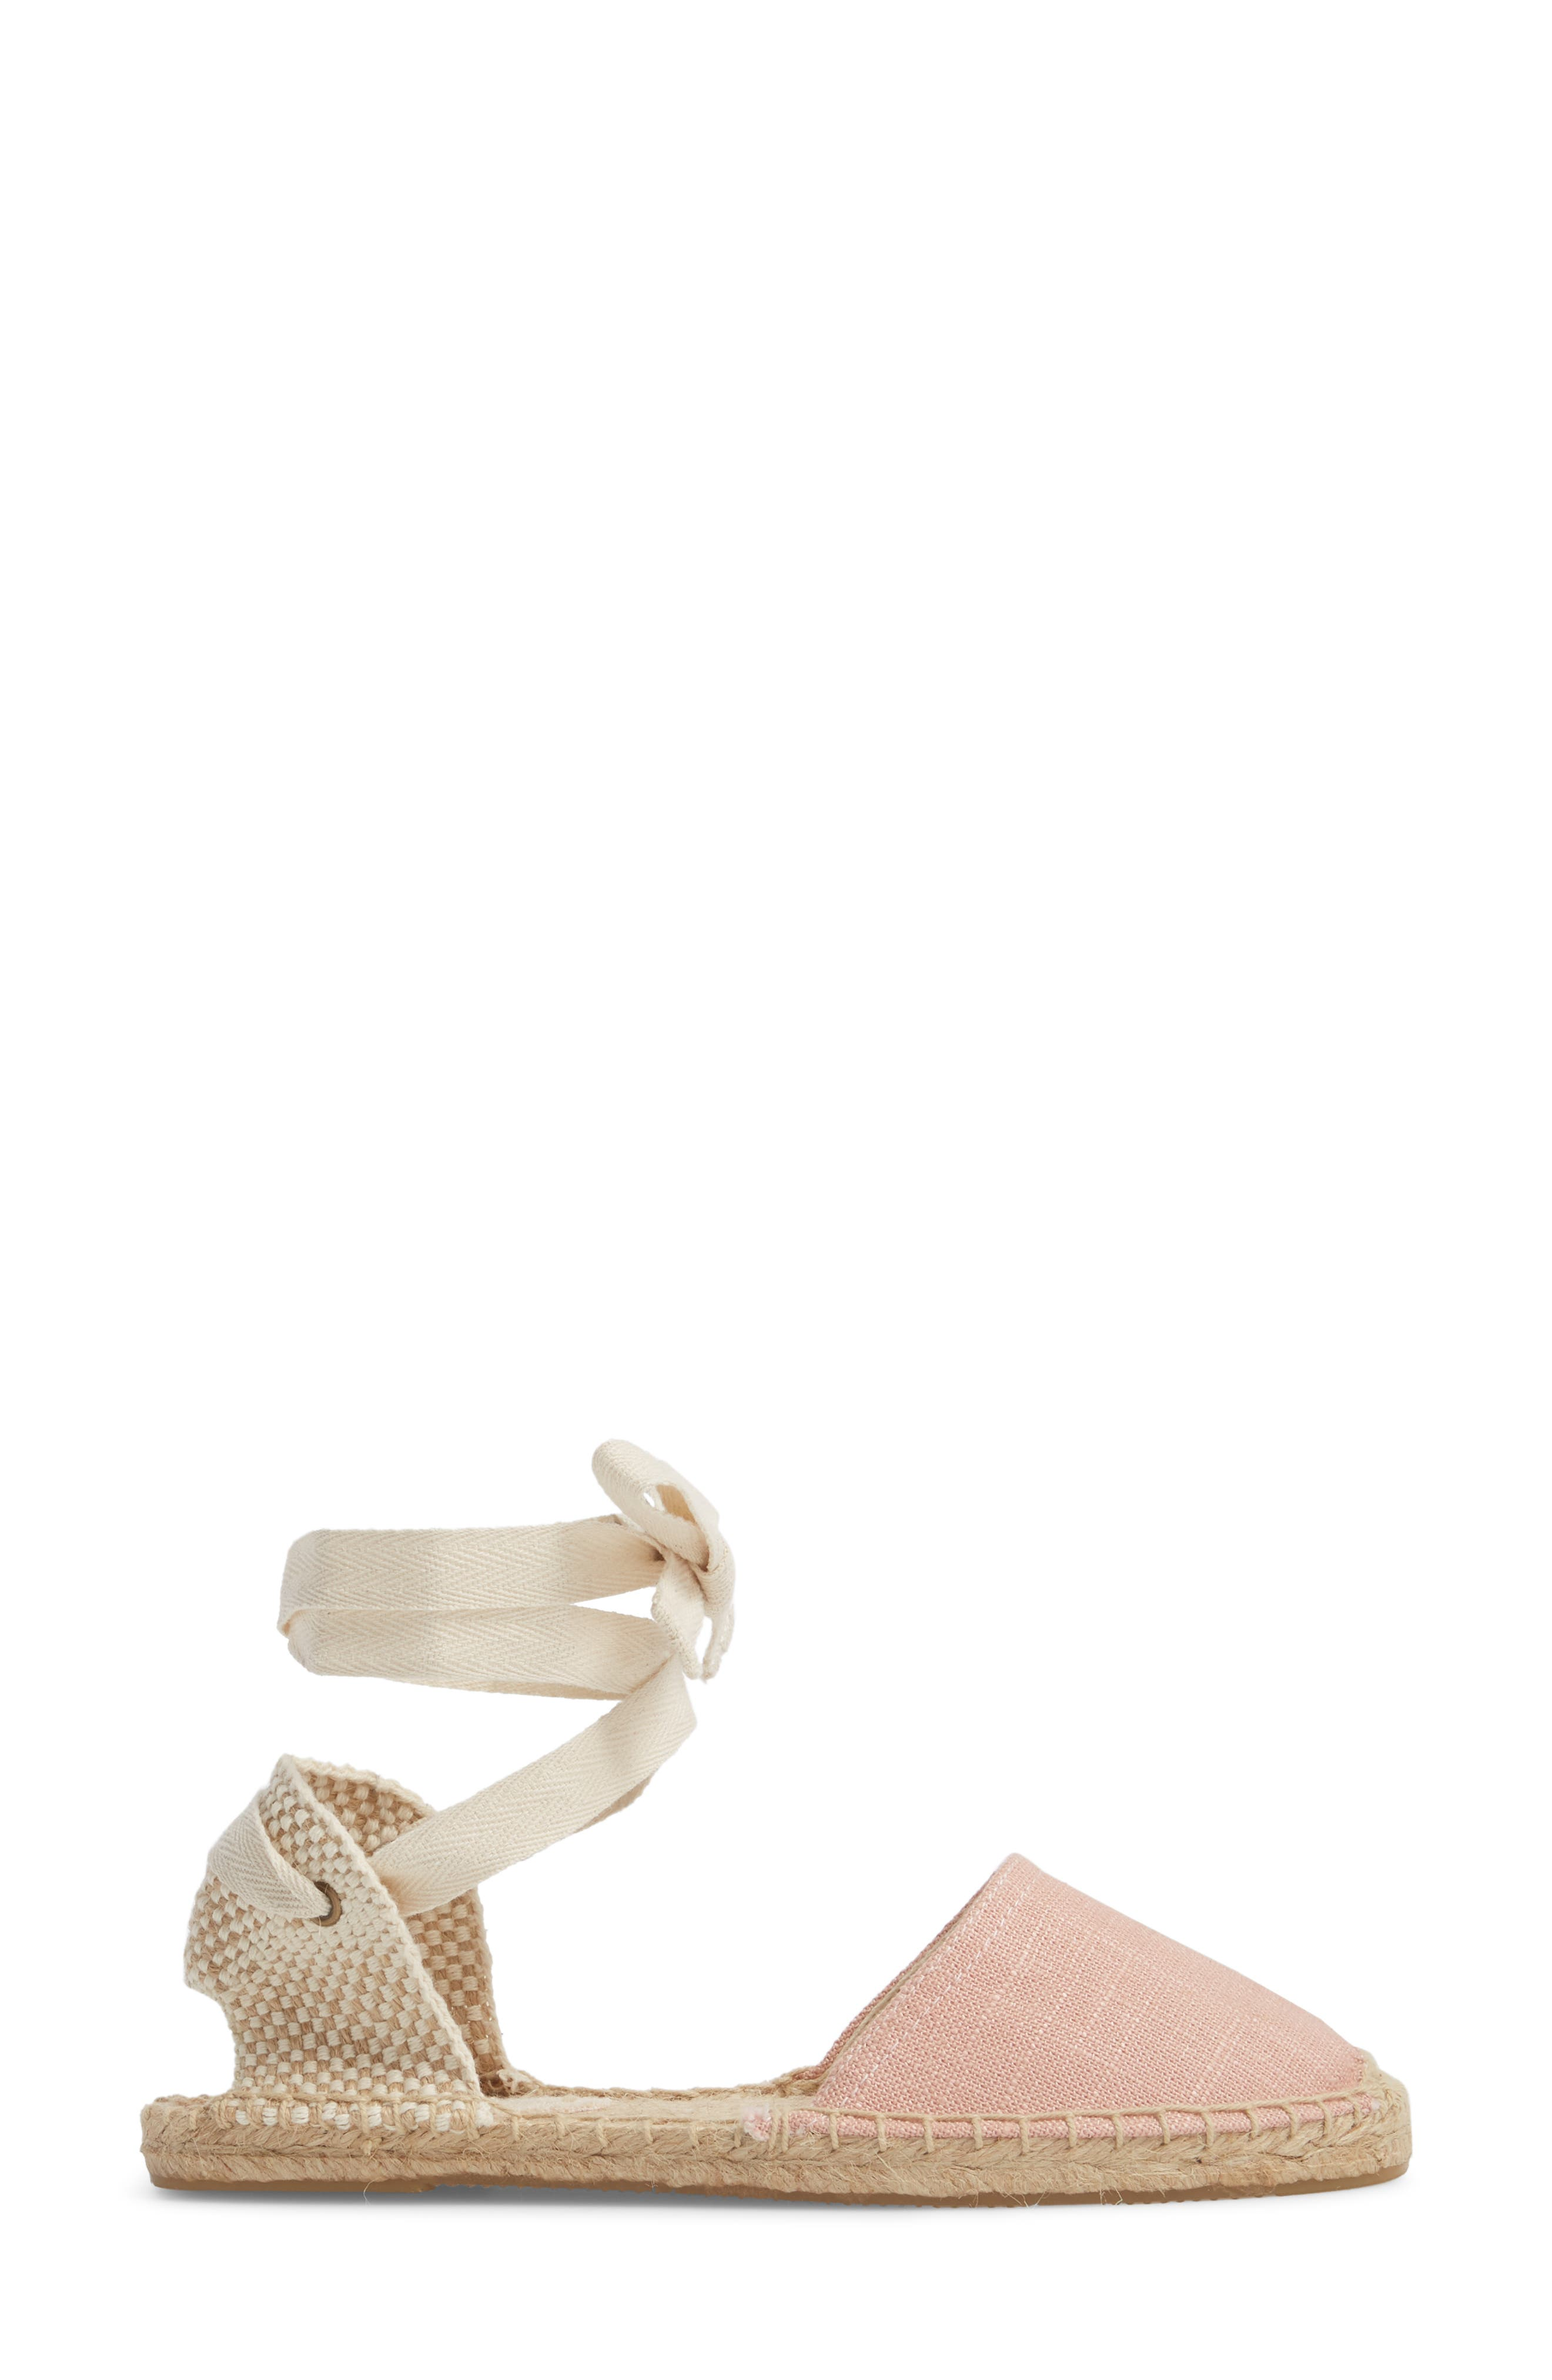 Classic Espadrille Sandal,                             Alternate thumbnail 3, color,                             Dusty Rose Fabric